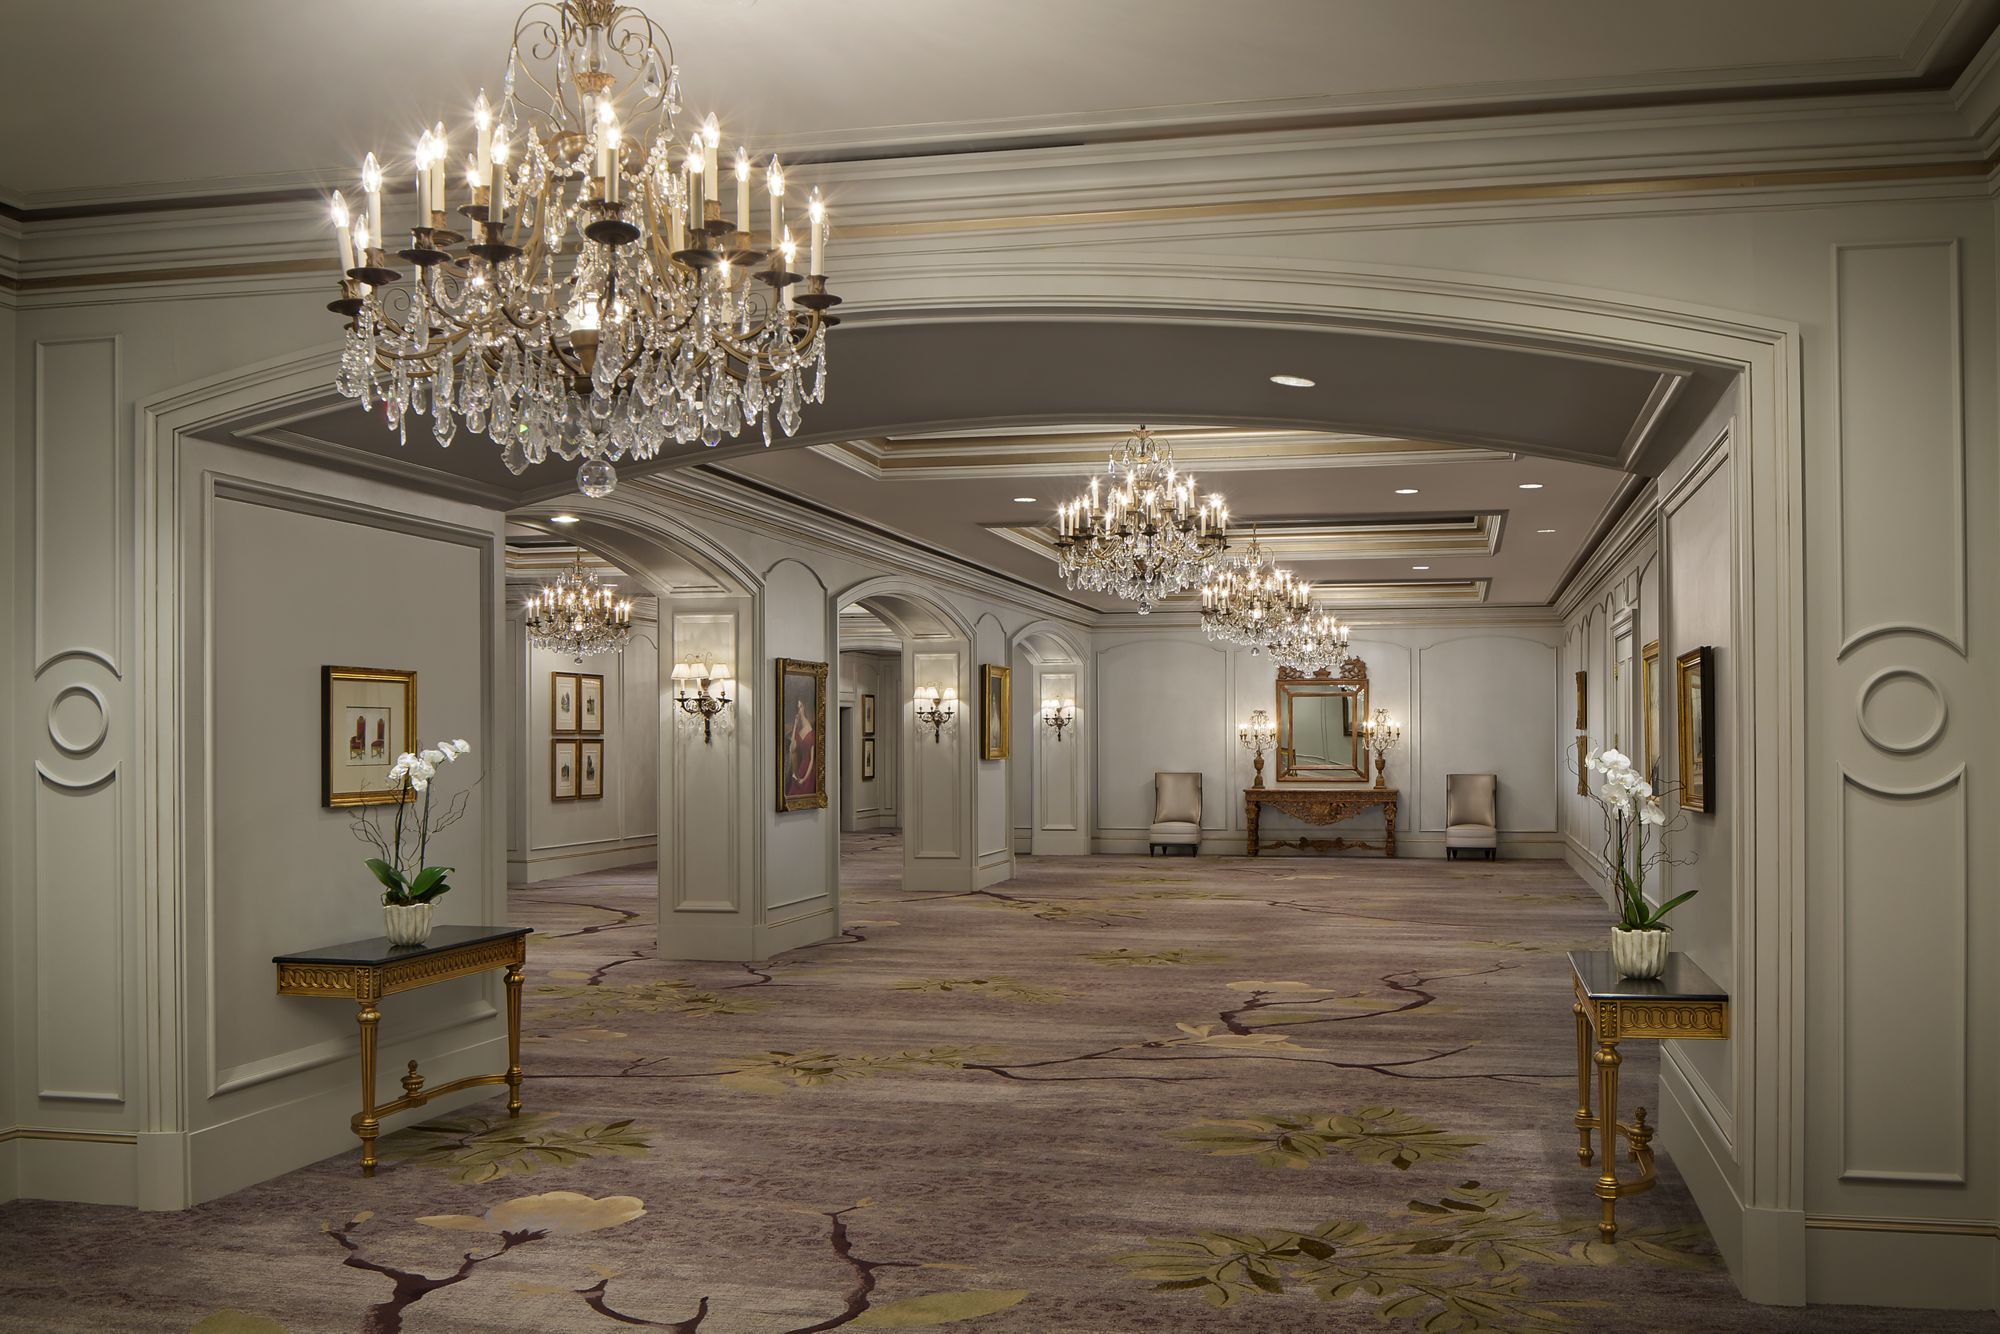 The Ritz-Carlton, New Orleans image 11